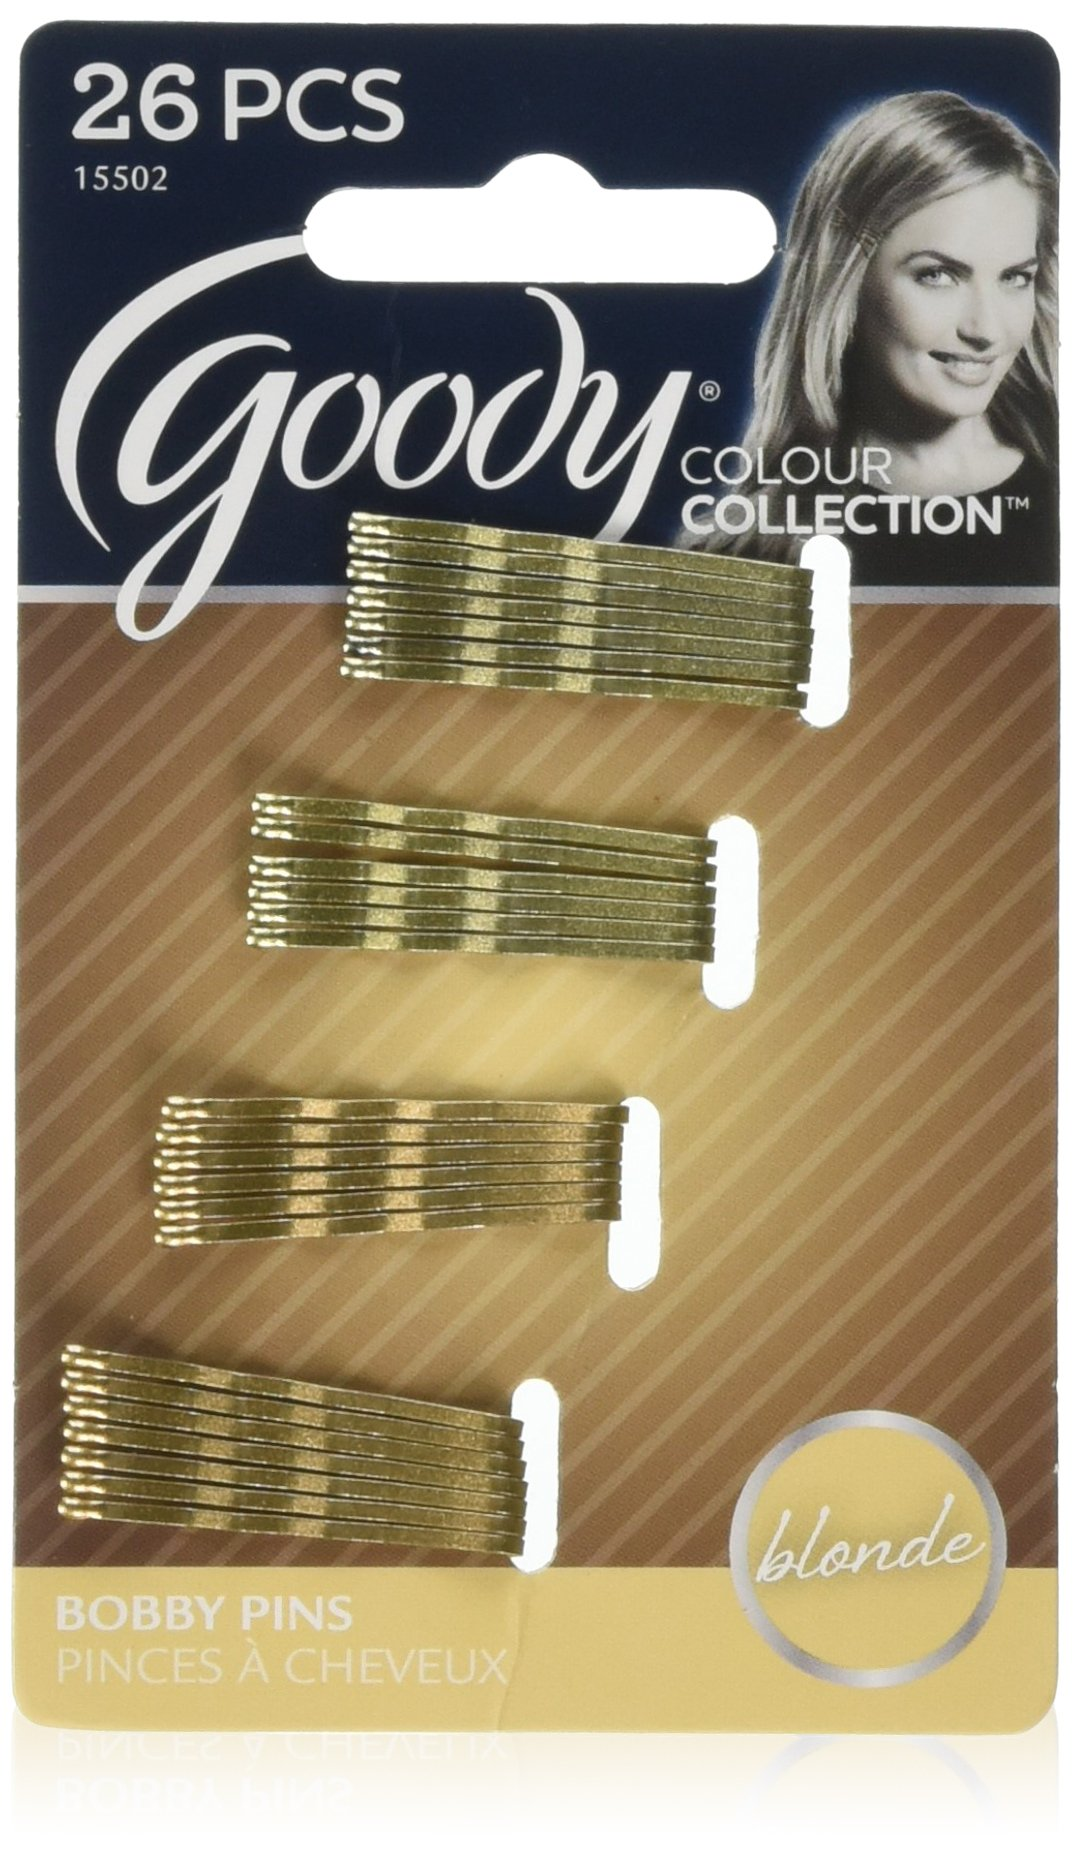 """Goody Colour Collection Blonde Mini Bobbies - Size: 1-1/4"""", 26 Pieces (Styles May Vary)"""